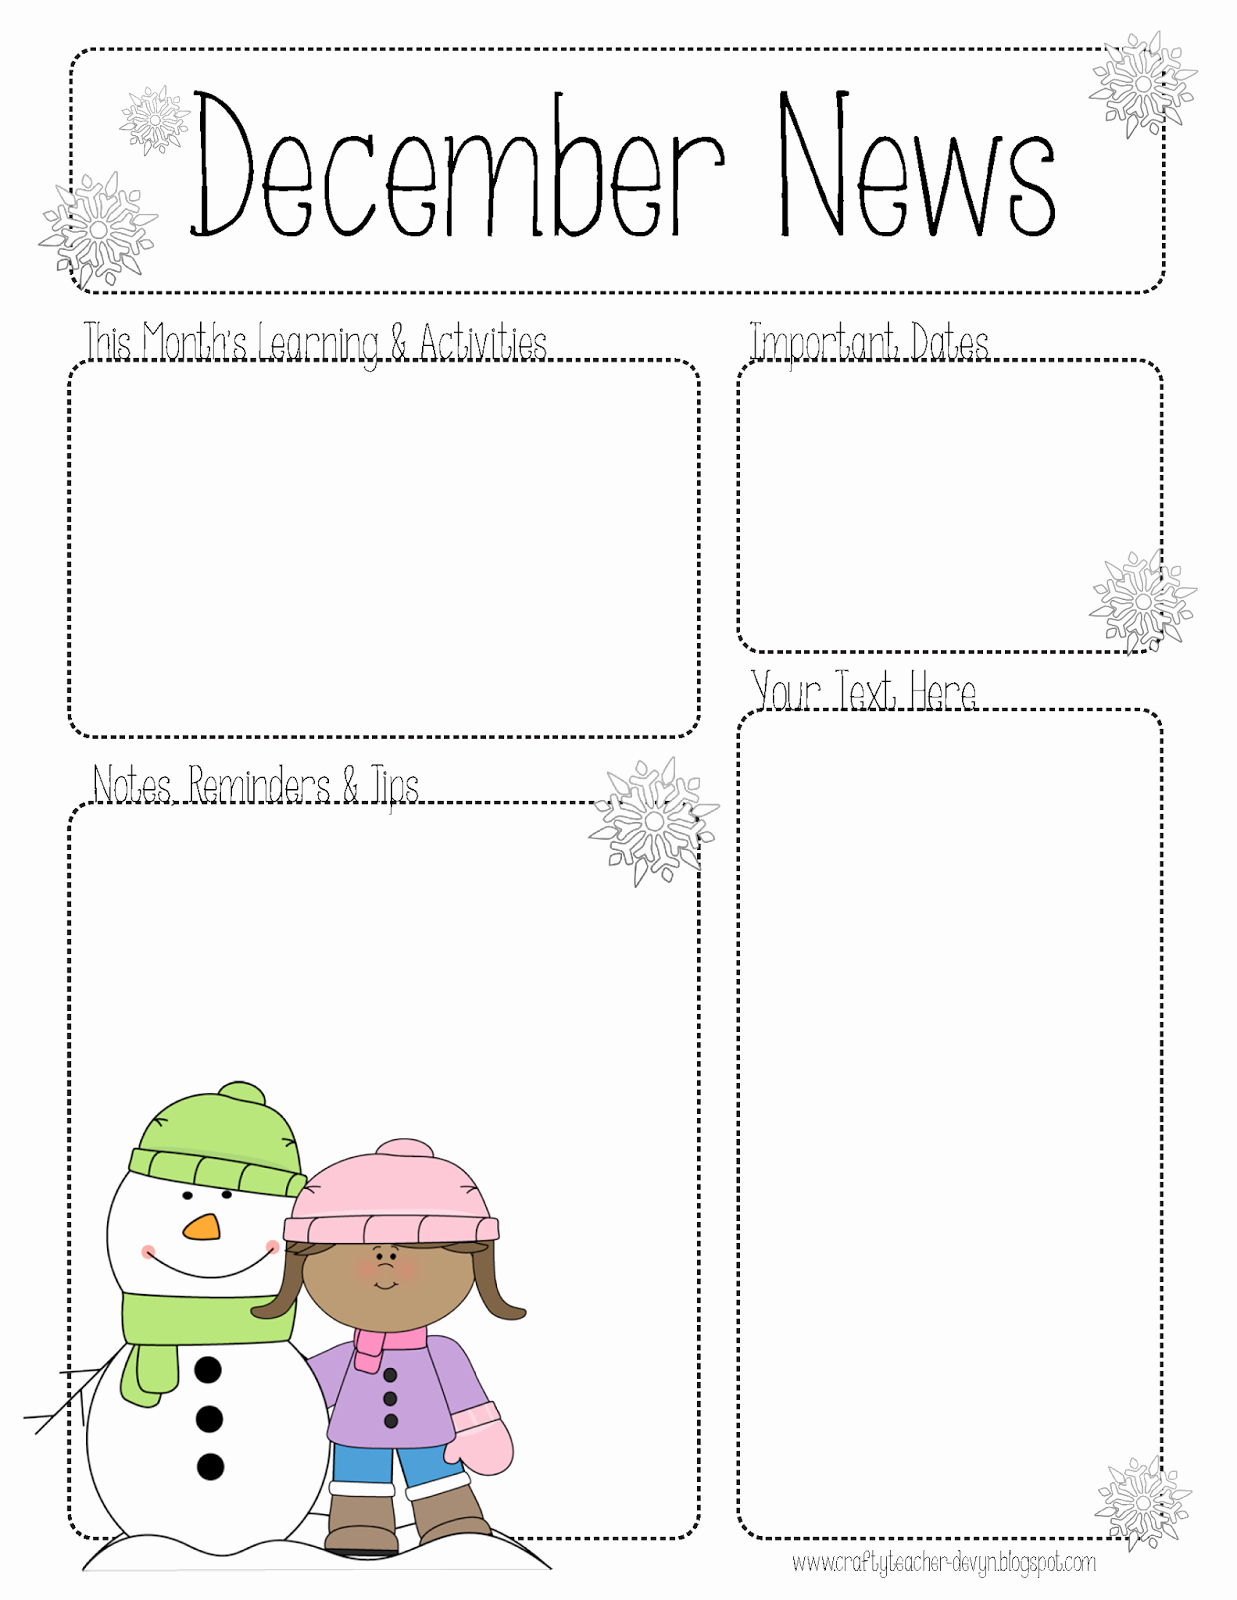 Free Preschool Newsletter Templates Luxury December Newsletter for All Grades Preschool Pre K